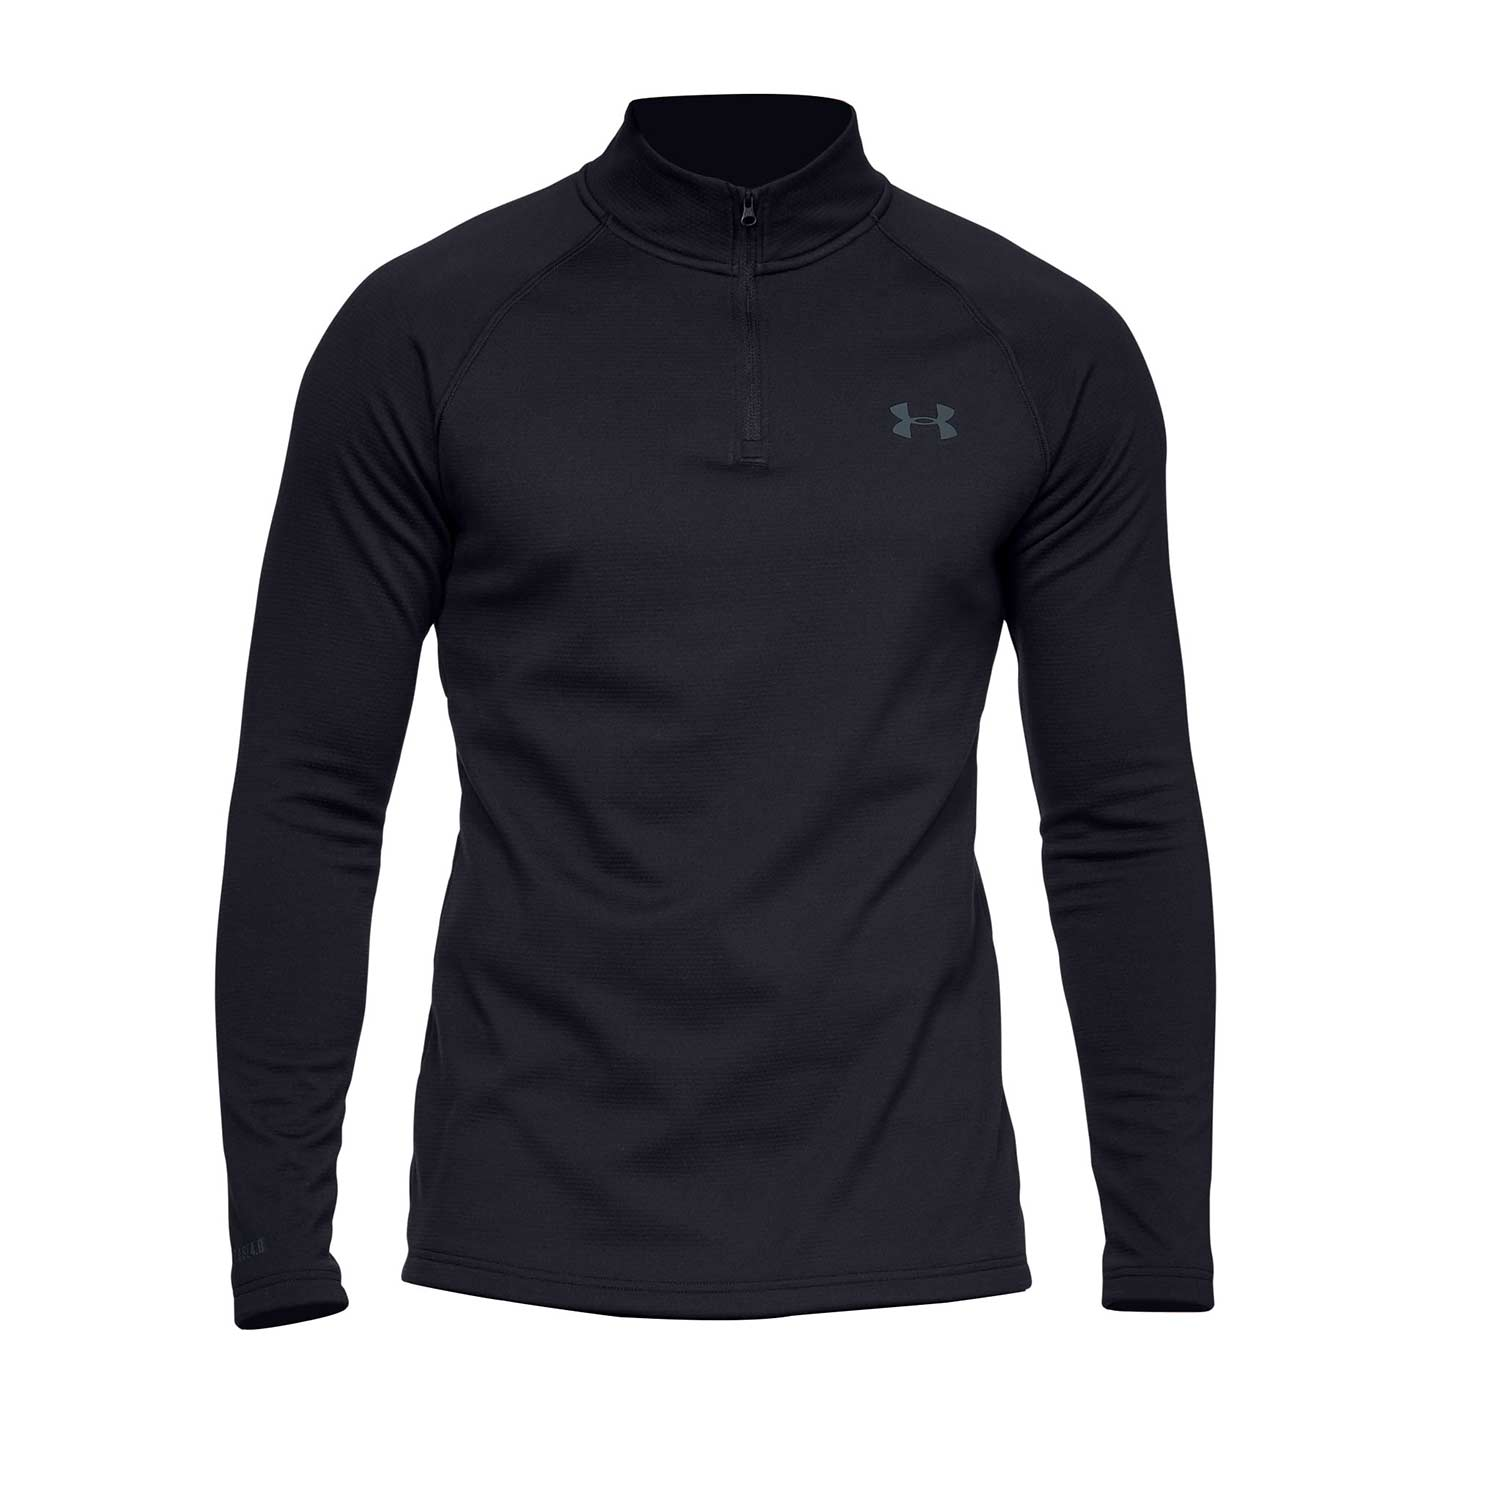 Under Armour ColdGear Base 4.0 1/4 Zip Shirt